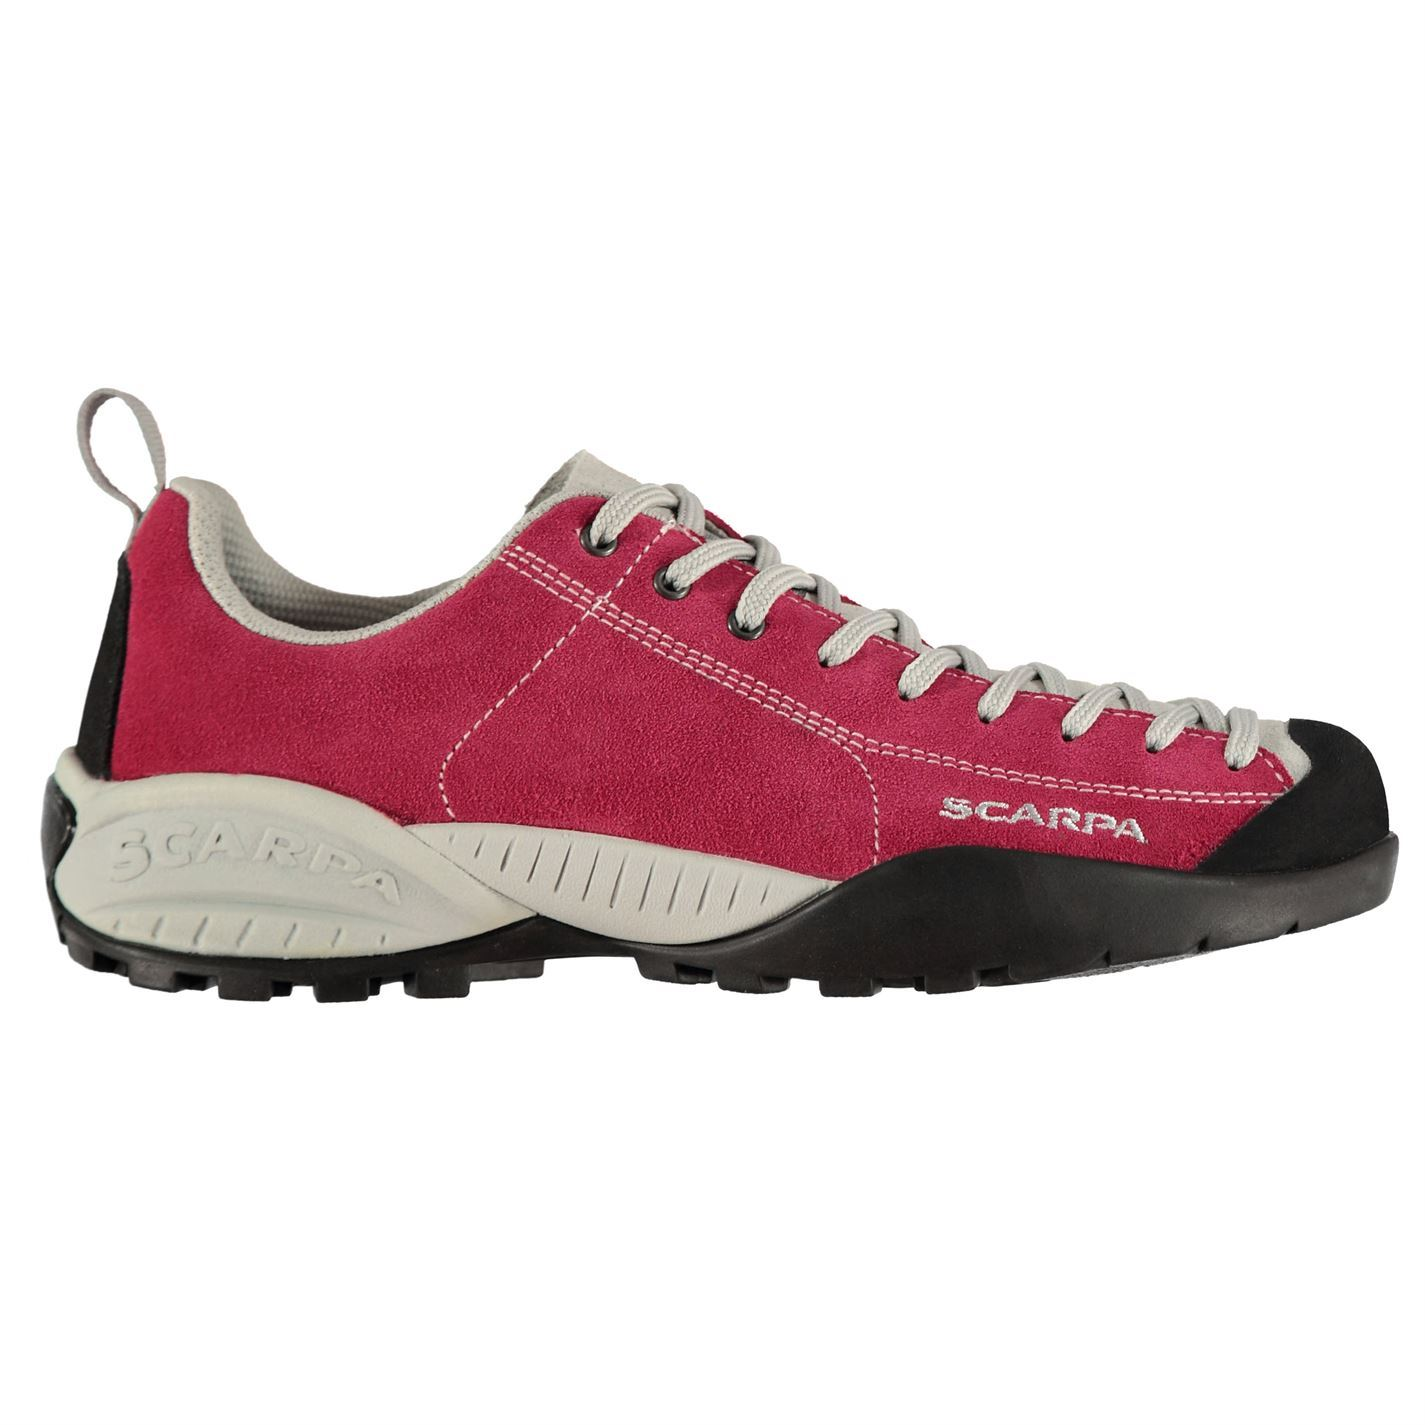 Scarpa Damenschuhe Mojito Walking Schuhes Waterproof Lace Up Breathable Padded Padded Padded Ankle 1bce29